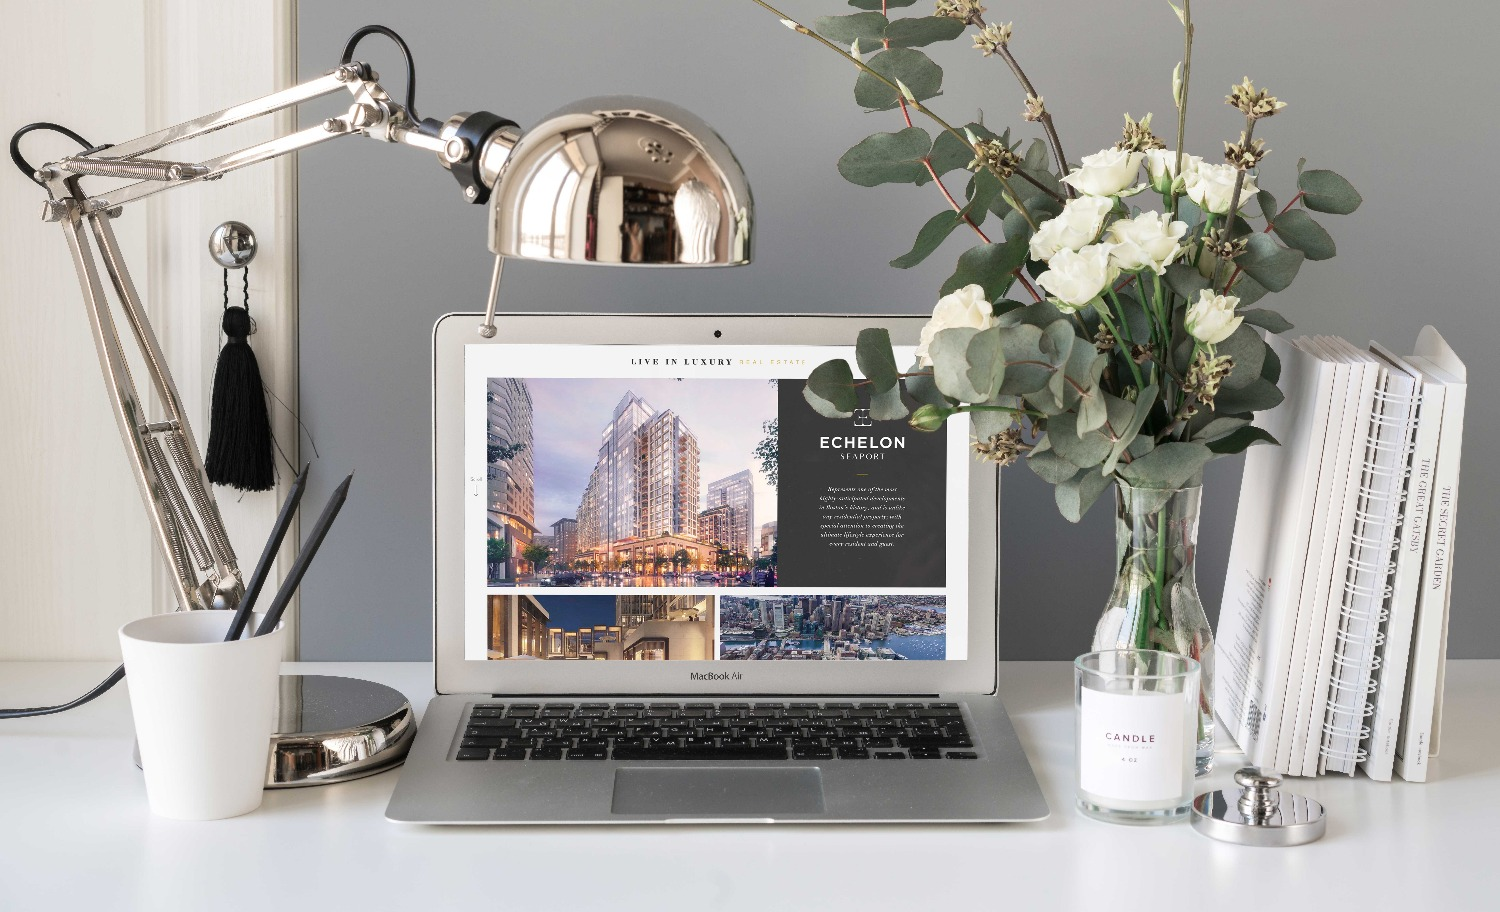 Sarah-Cas-Branding-and-Design-Website-Live-In-Luxury-Real-Estate-Echelon-Seaport-Boston_edited